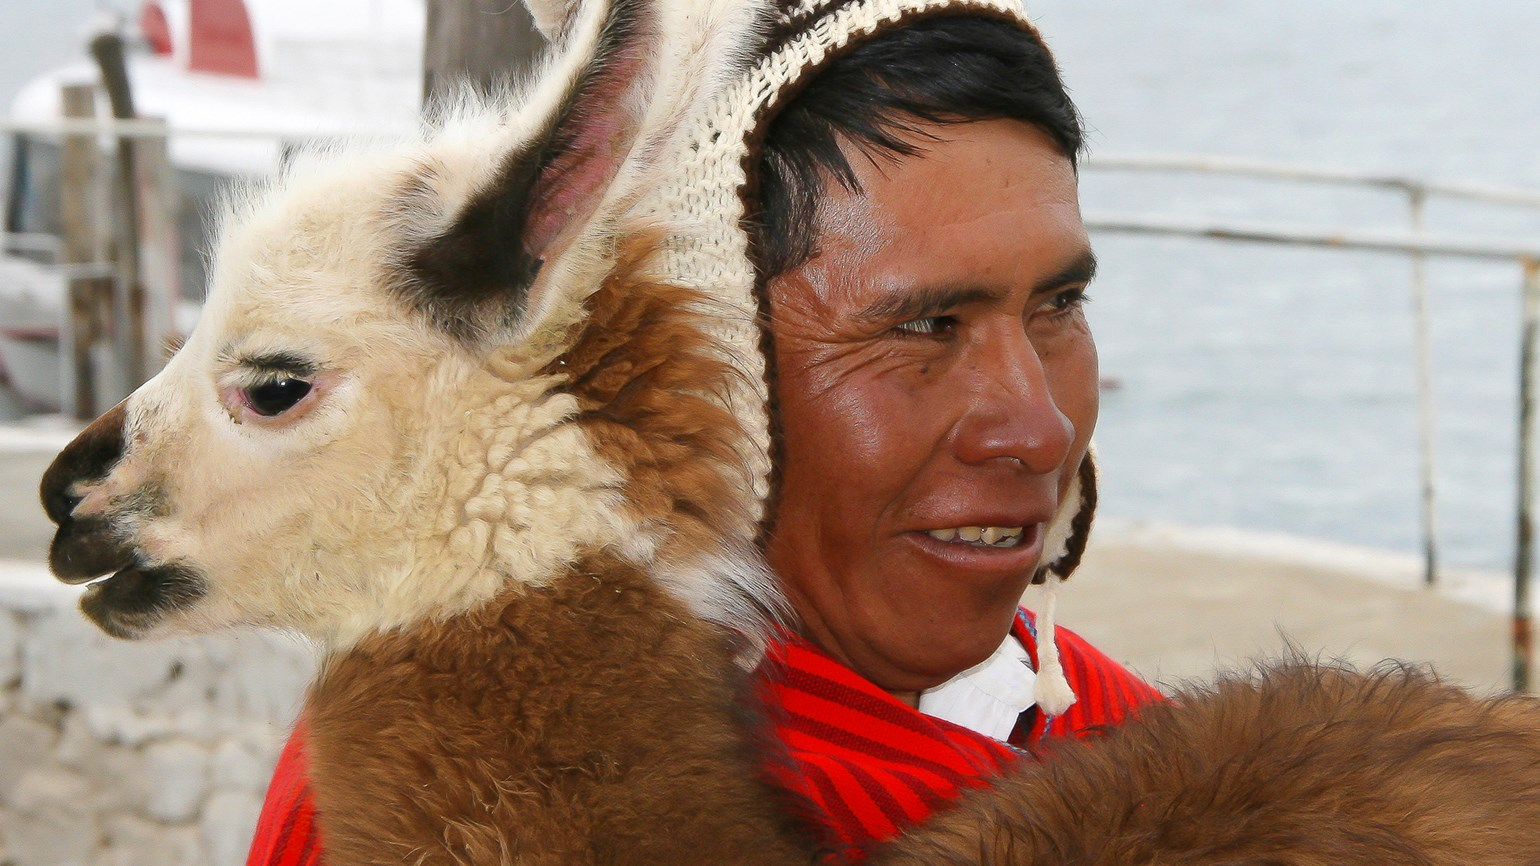 Peru tour, from $3,285